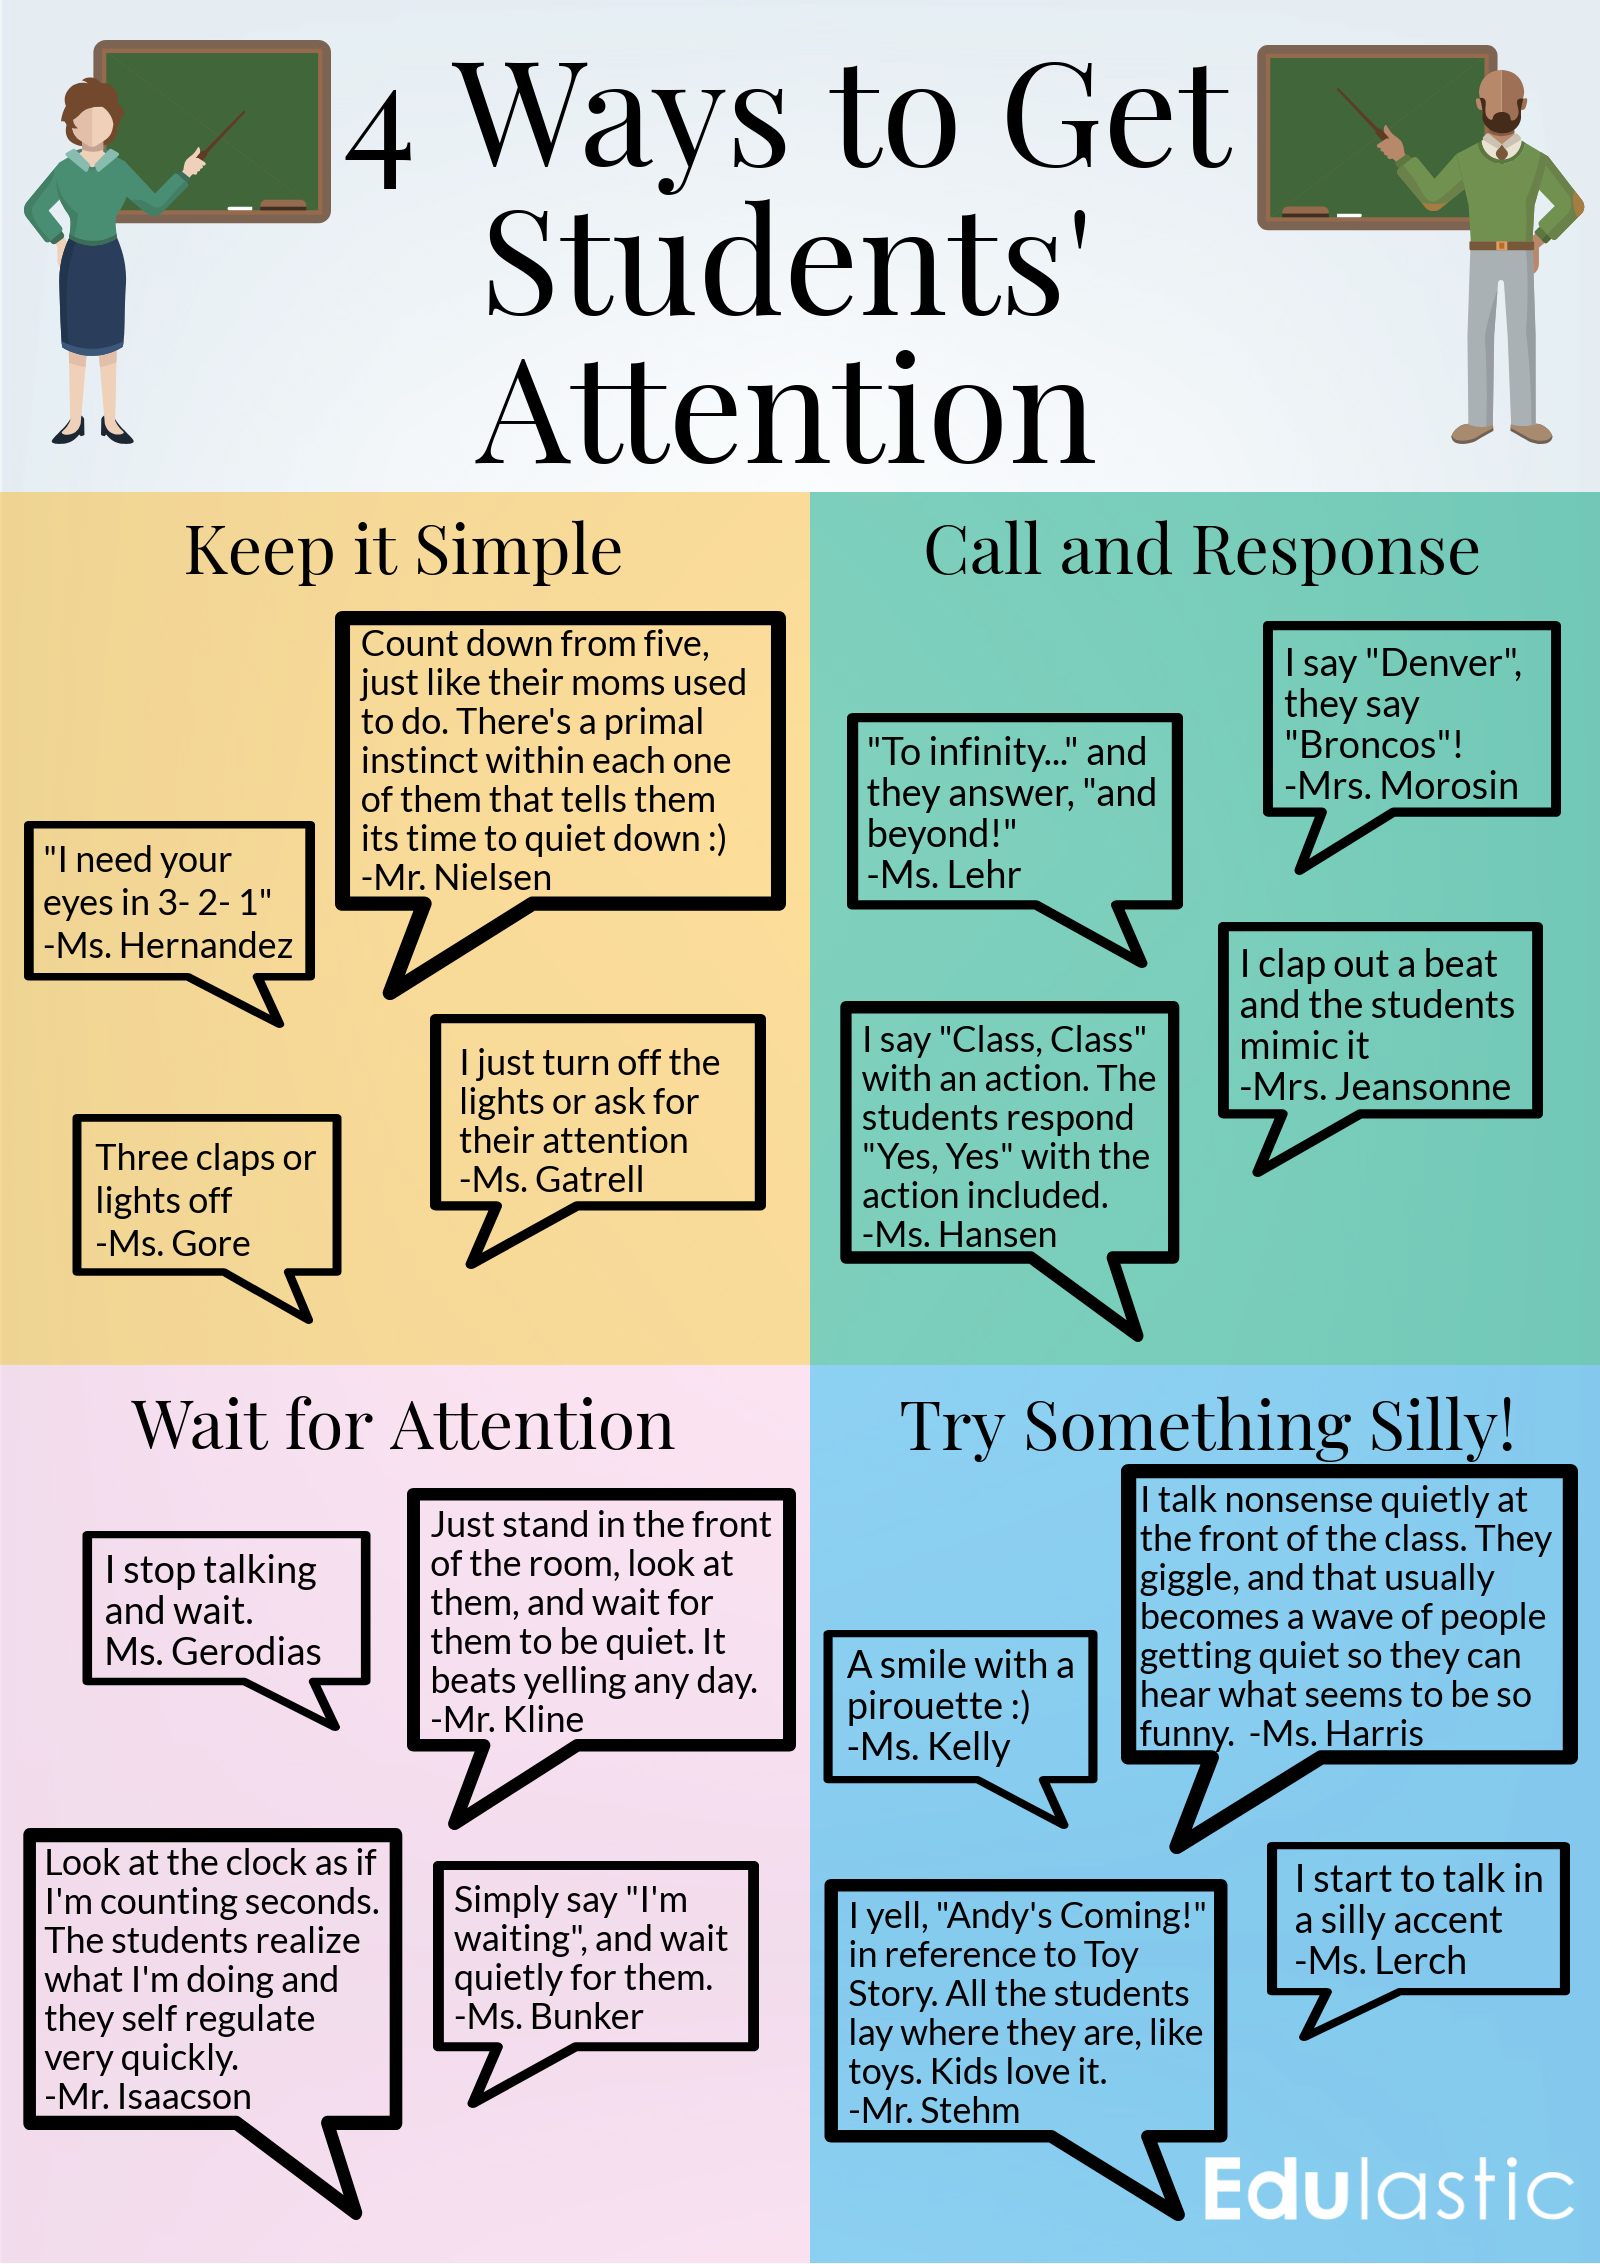 4 ways to get students' attention infographic